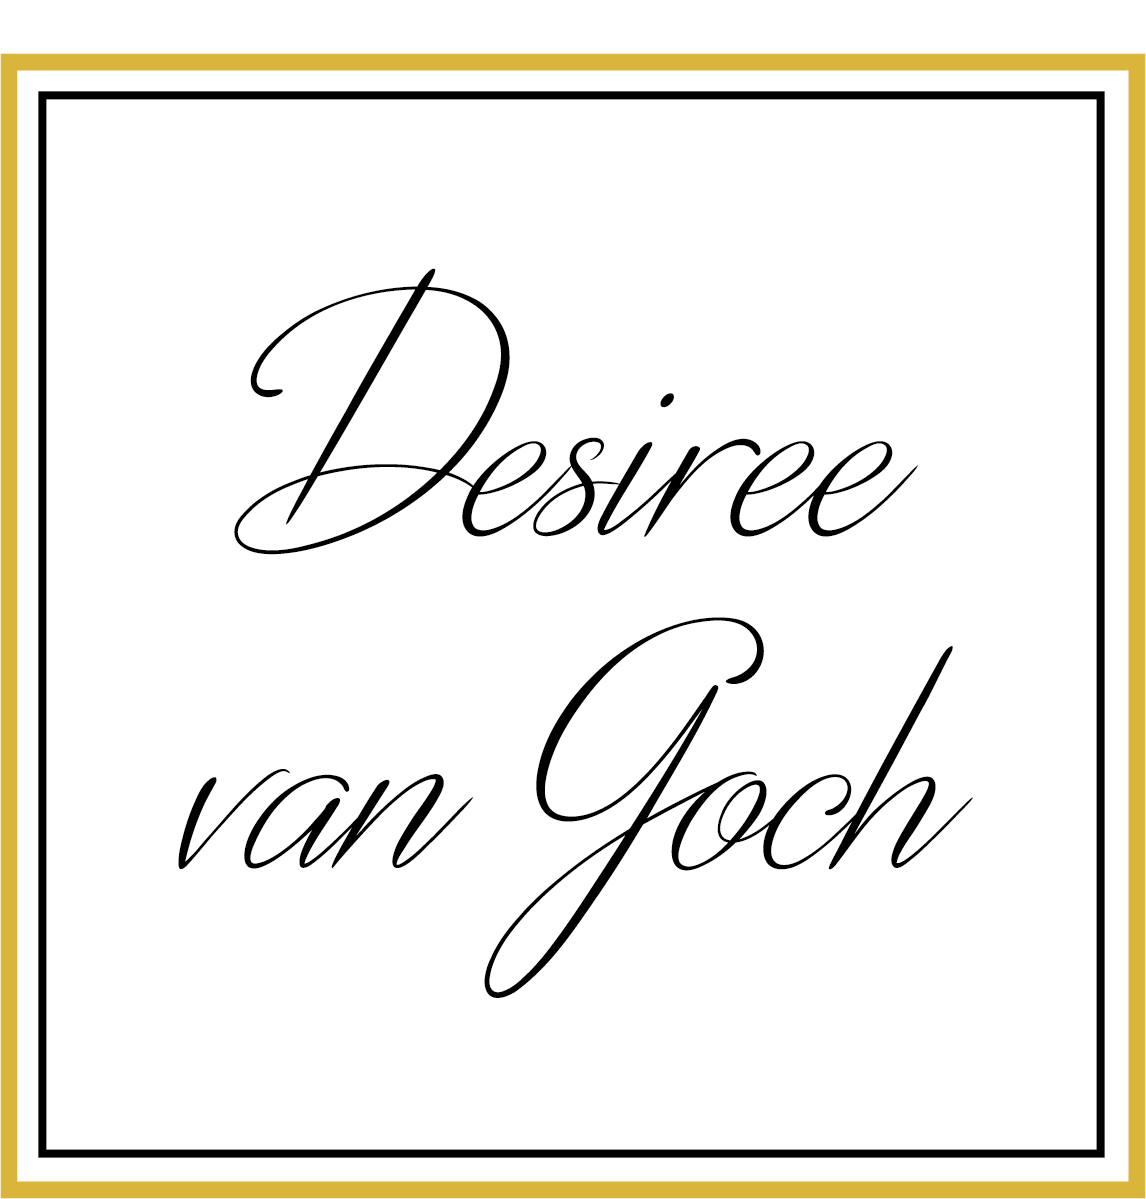 Desiree van Goch